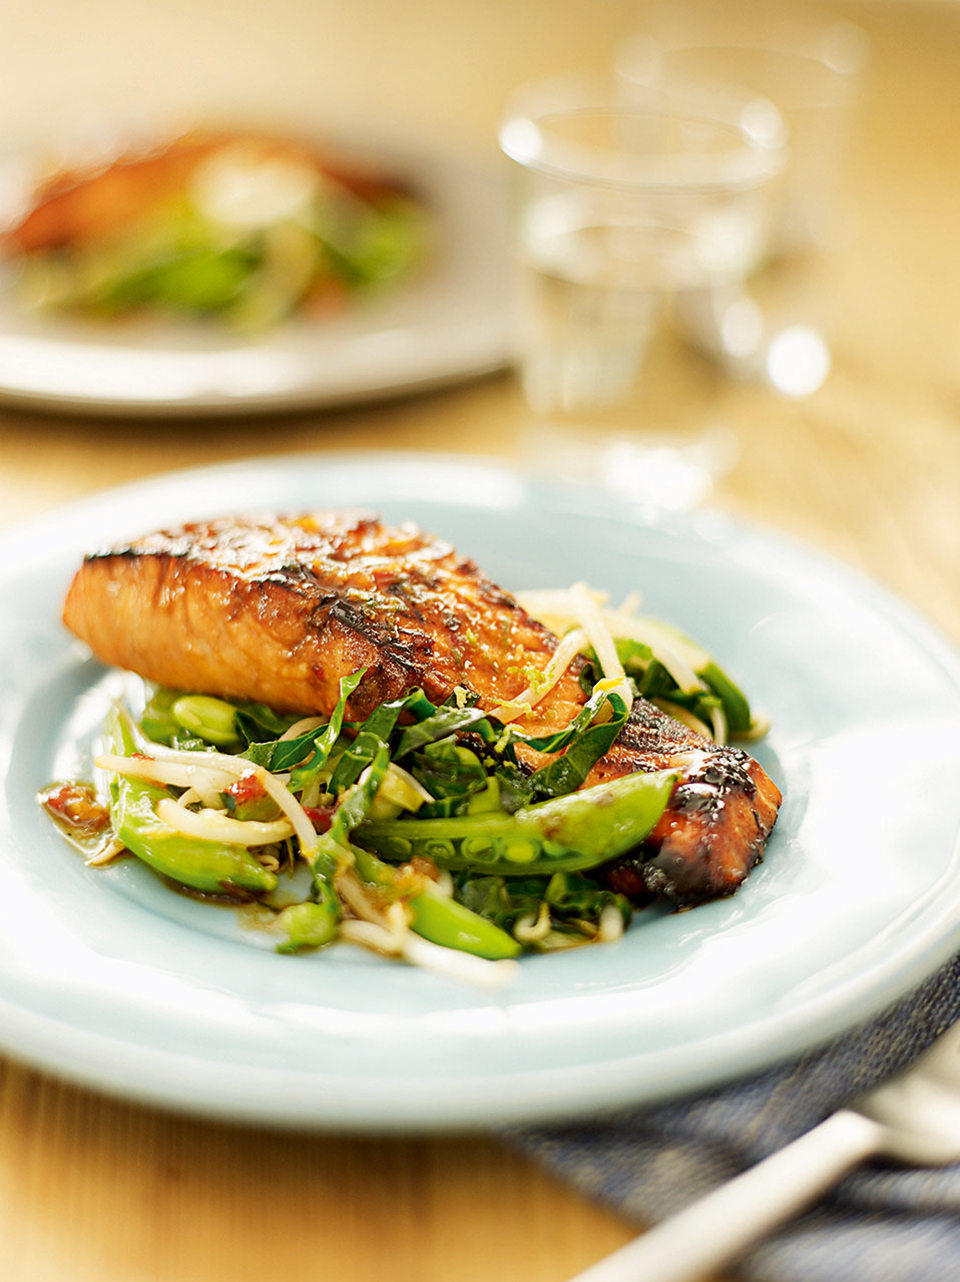 Teriyaki salmon with stir fry vegetables delicious magazine forumfinder Image collections